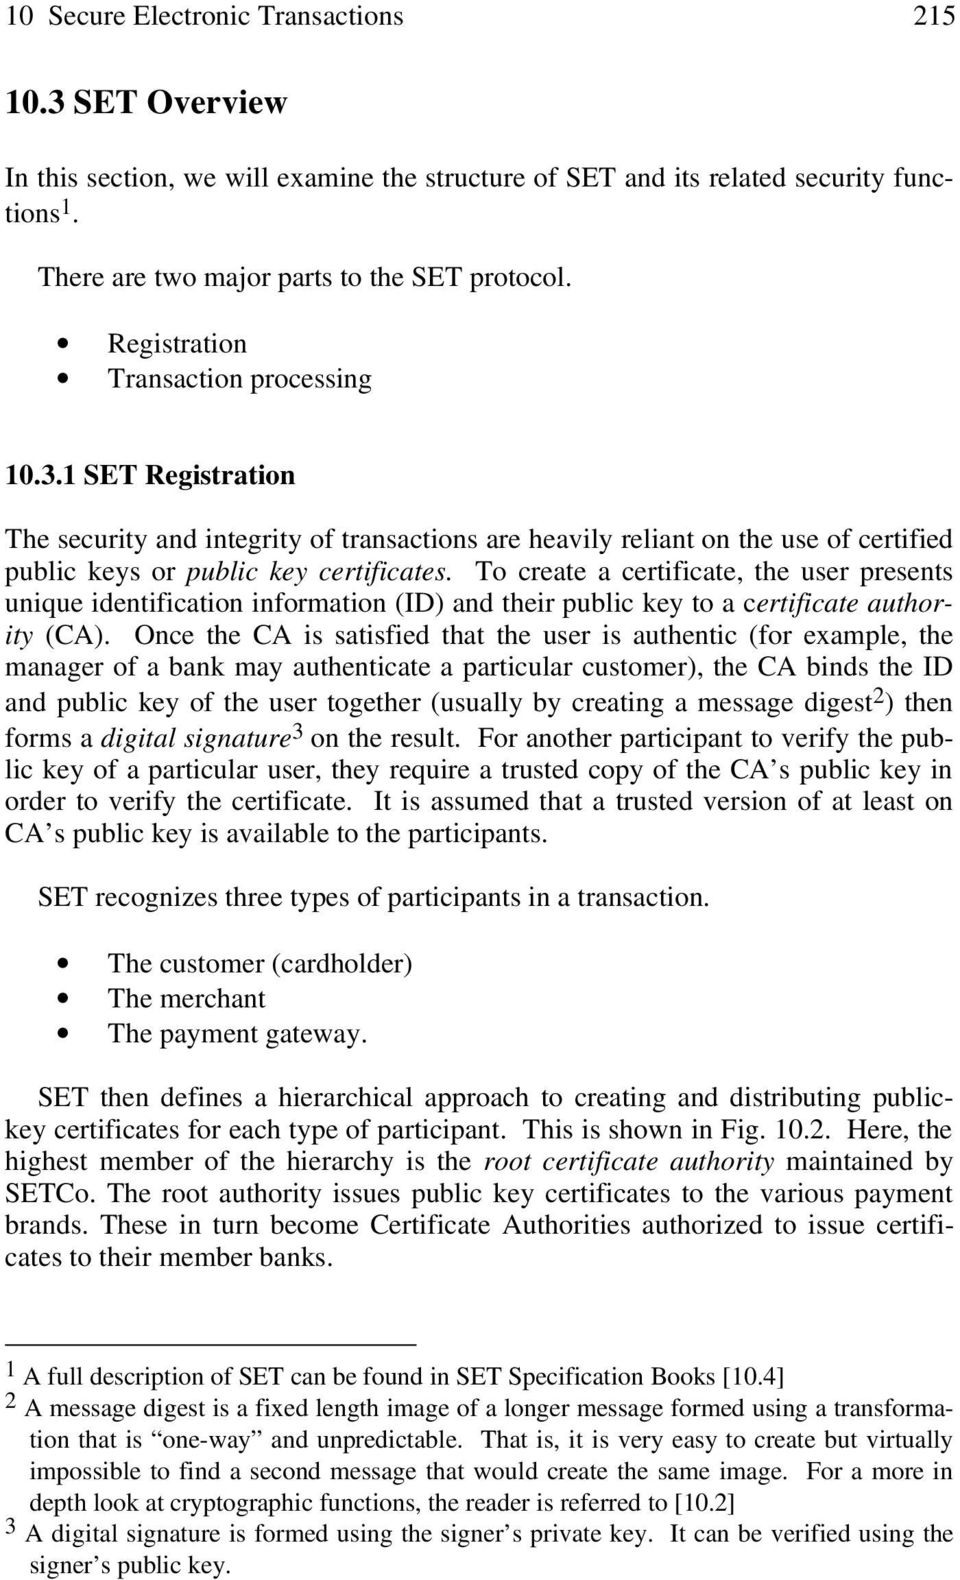 To create a certificate, the user presents unique identification information (ID) and their public key to a certificate authority (CA).